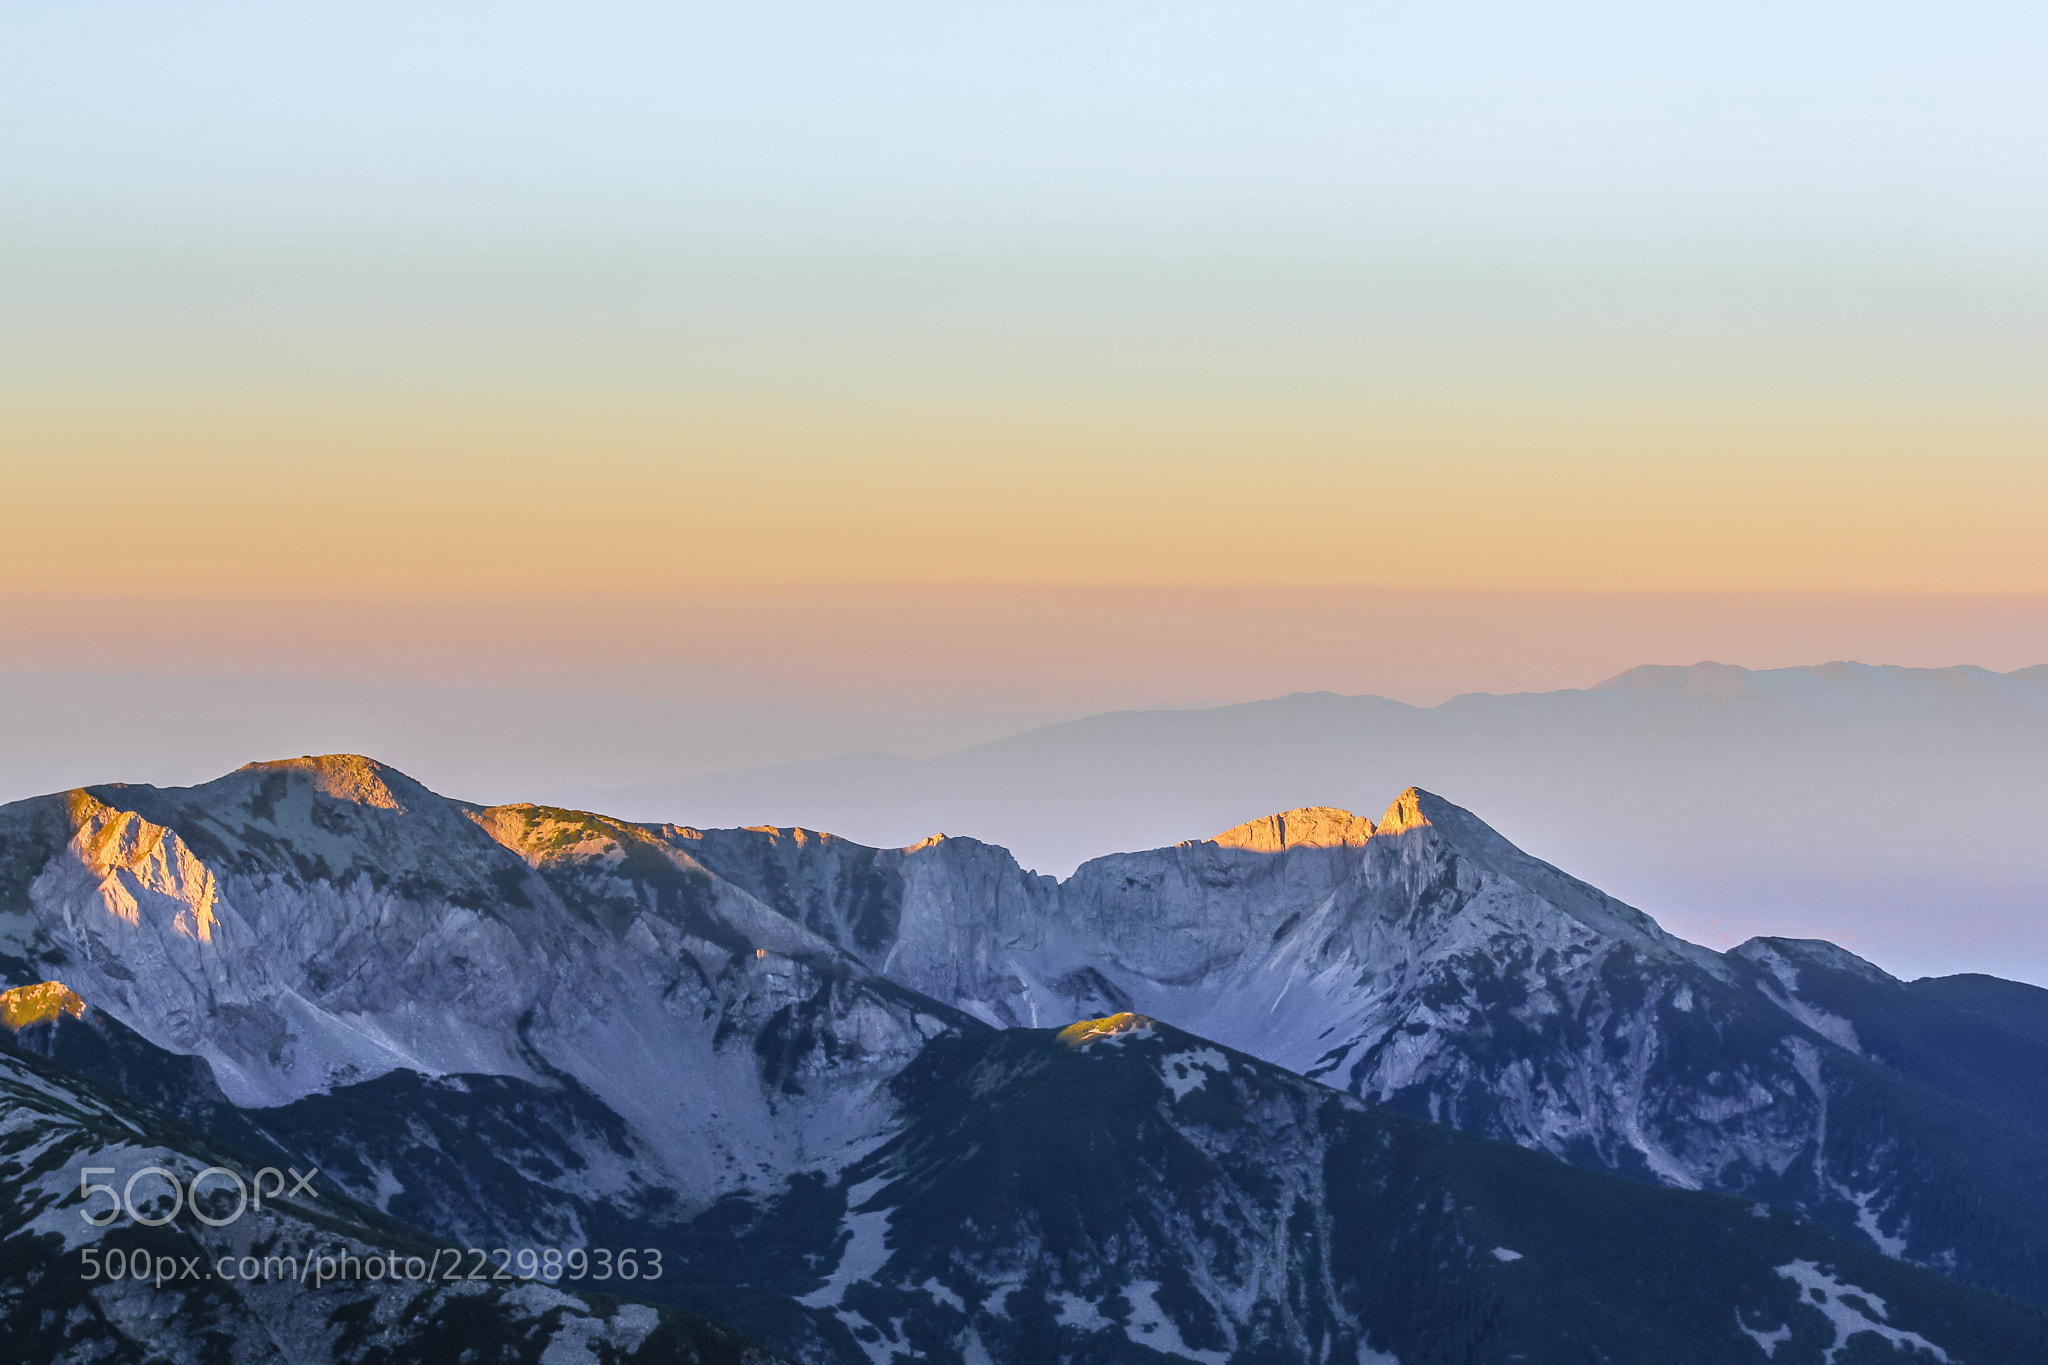 Sunrise over Pirin, Bulgaria